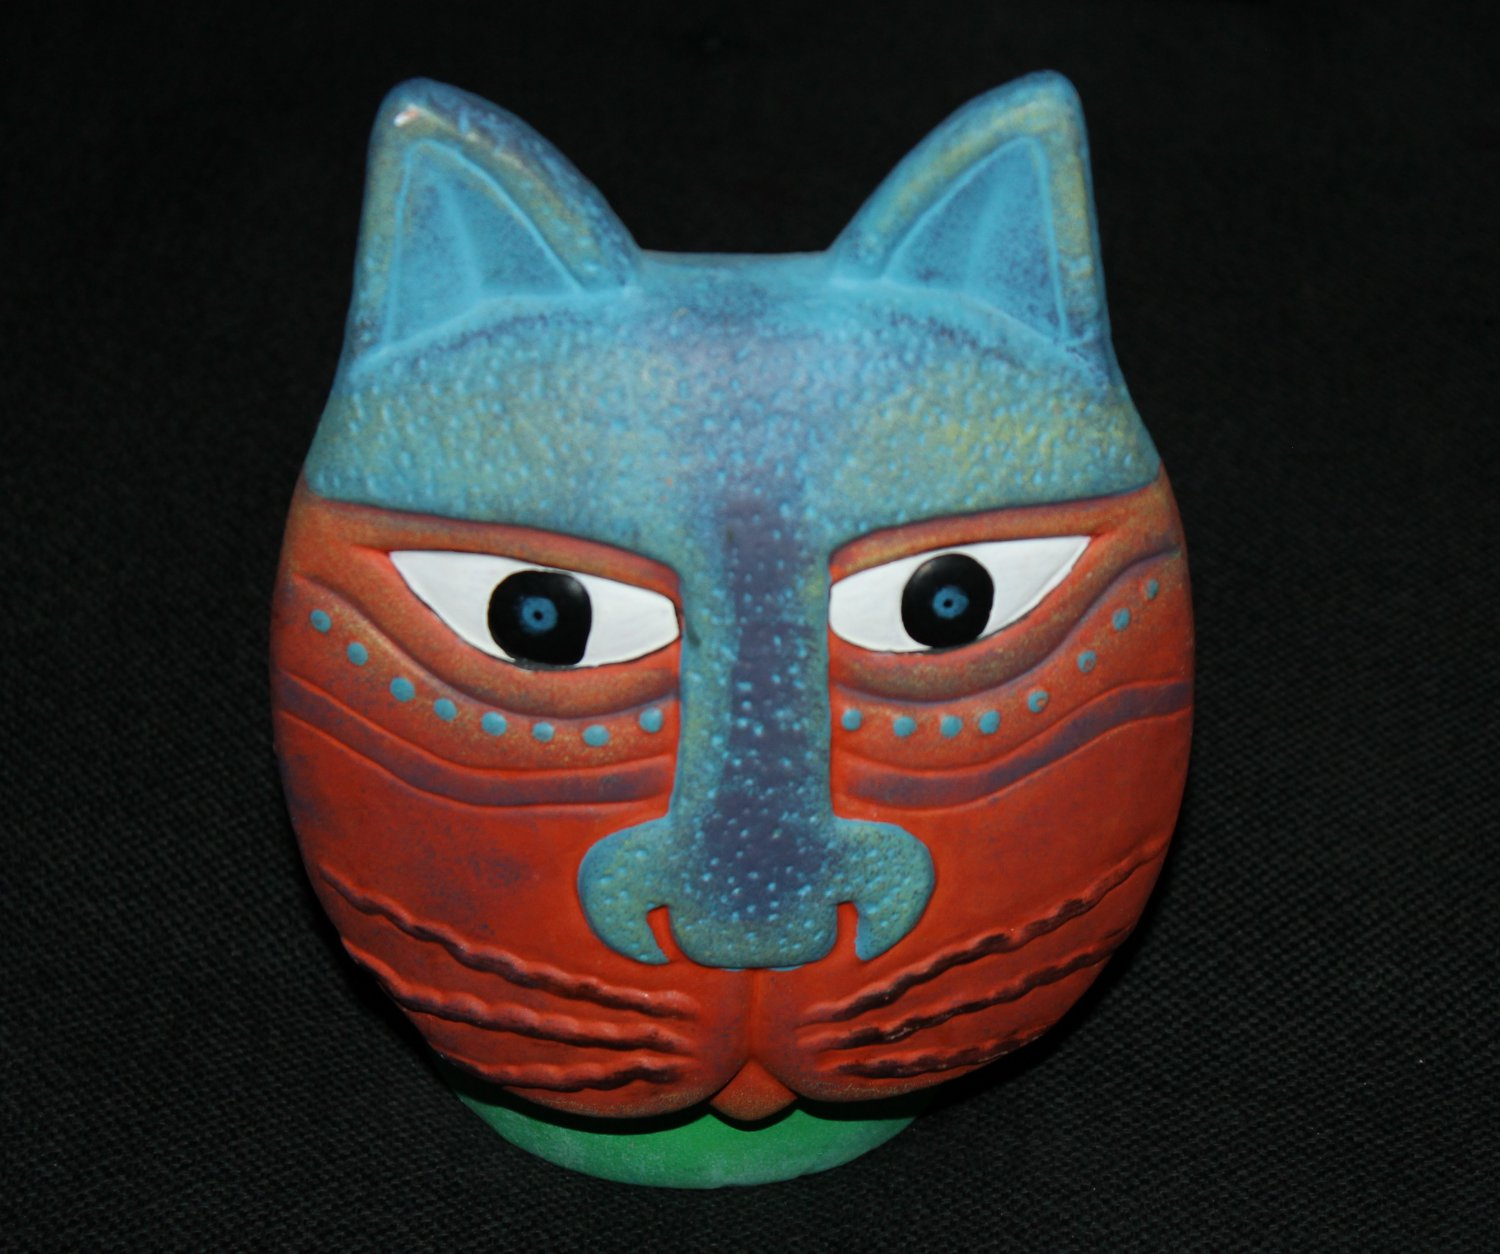 Kitty Vase - Ceramic Painted Cat for flowers, plants or home decor